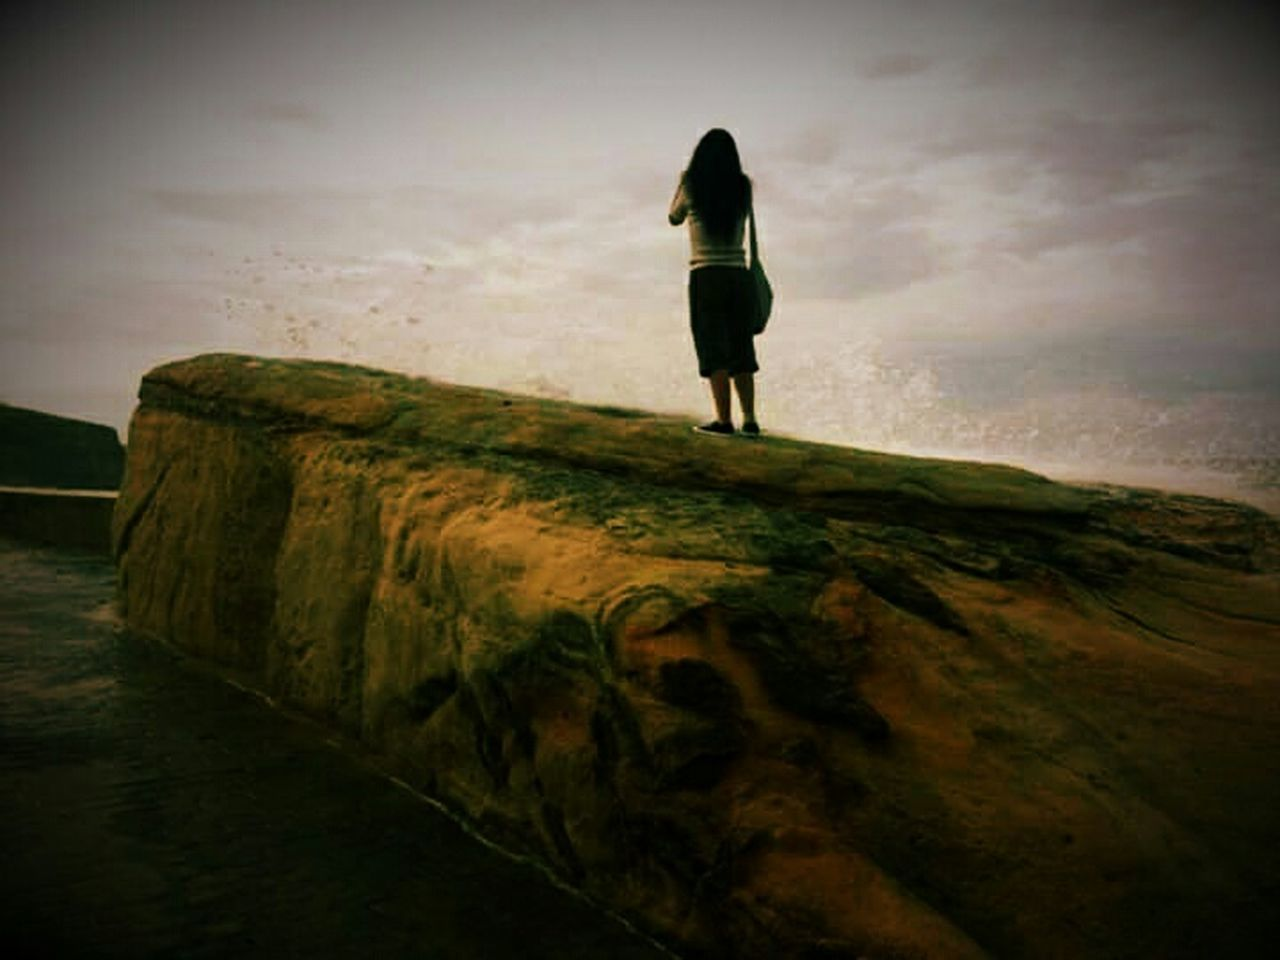 rear view, full length, one person, standing, sea, silhouette, one woman only, outdoors, beach, women, adult, horizon over water, nature, real people, day, young adult, adults only, beauty in nature, only women, one young woman only, people, sky